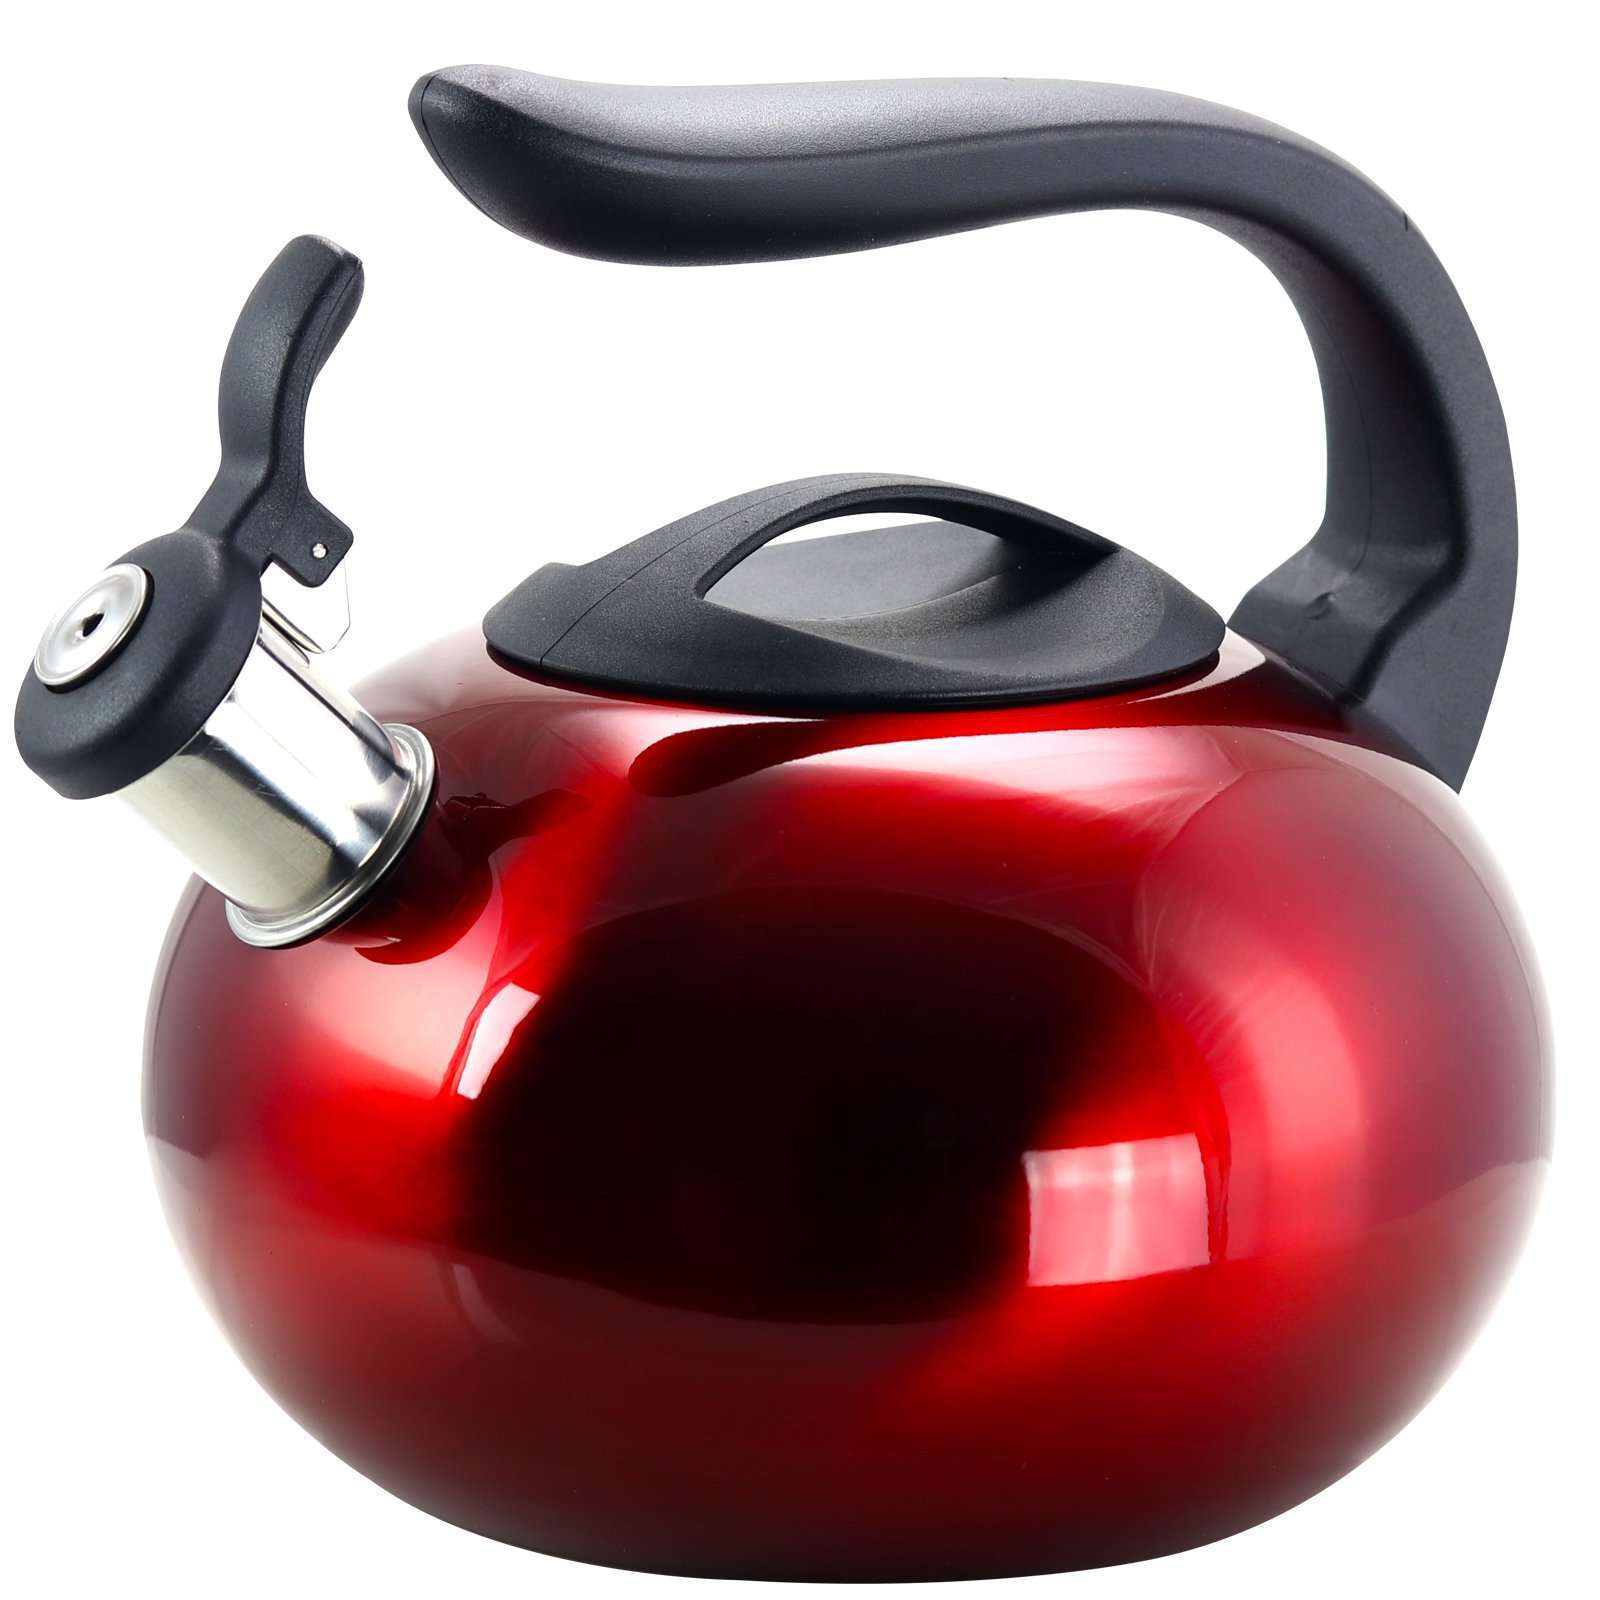 Mr Coffee Langham 2.1 Quart. Stainless Steel Whistling Tea Kettle in Red